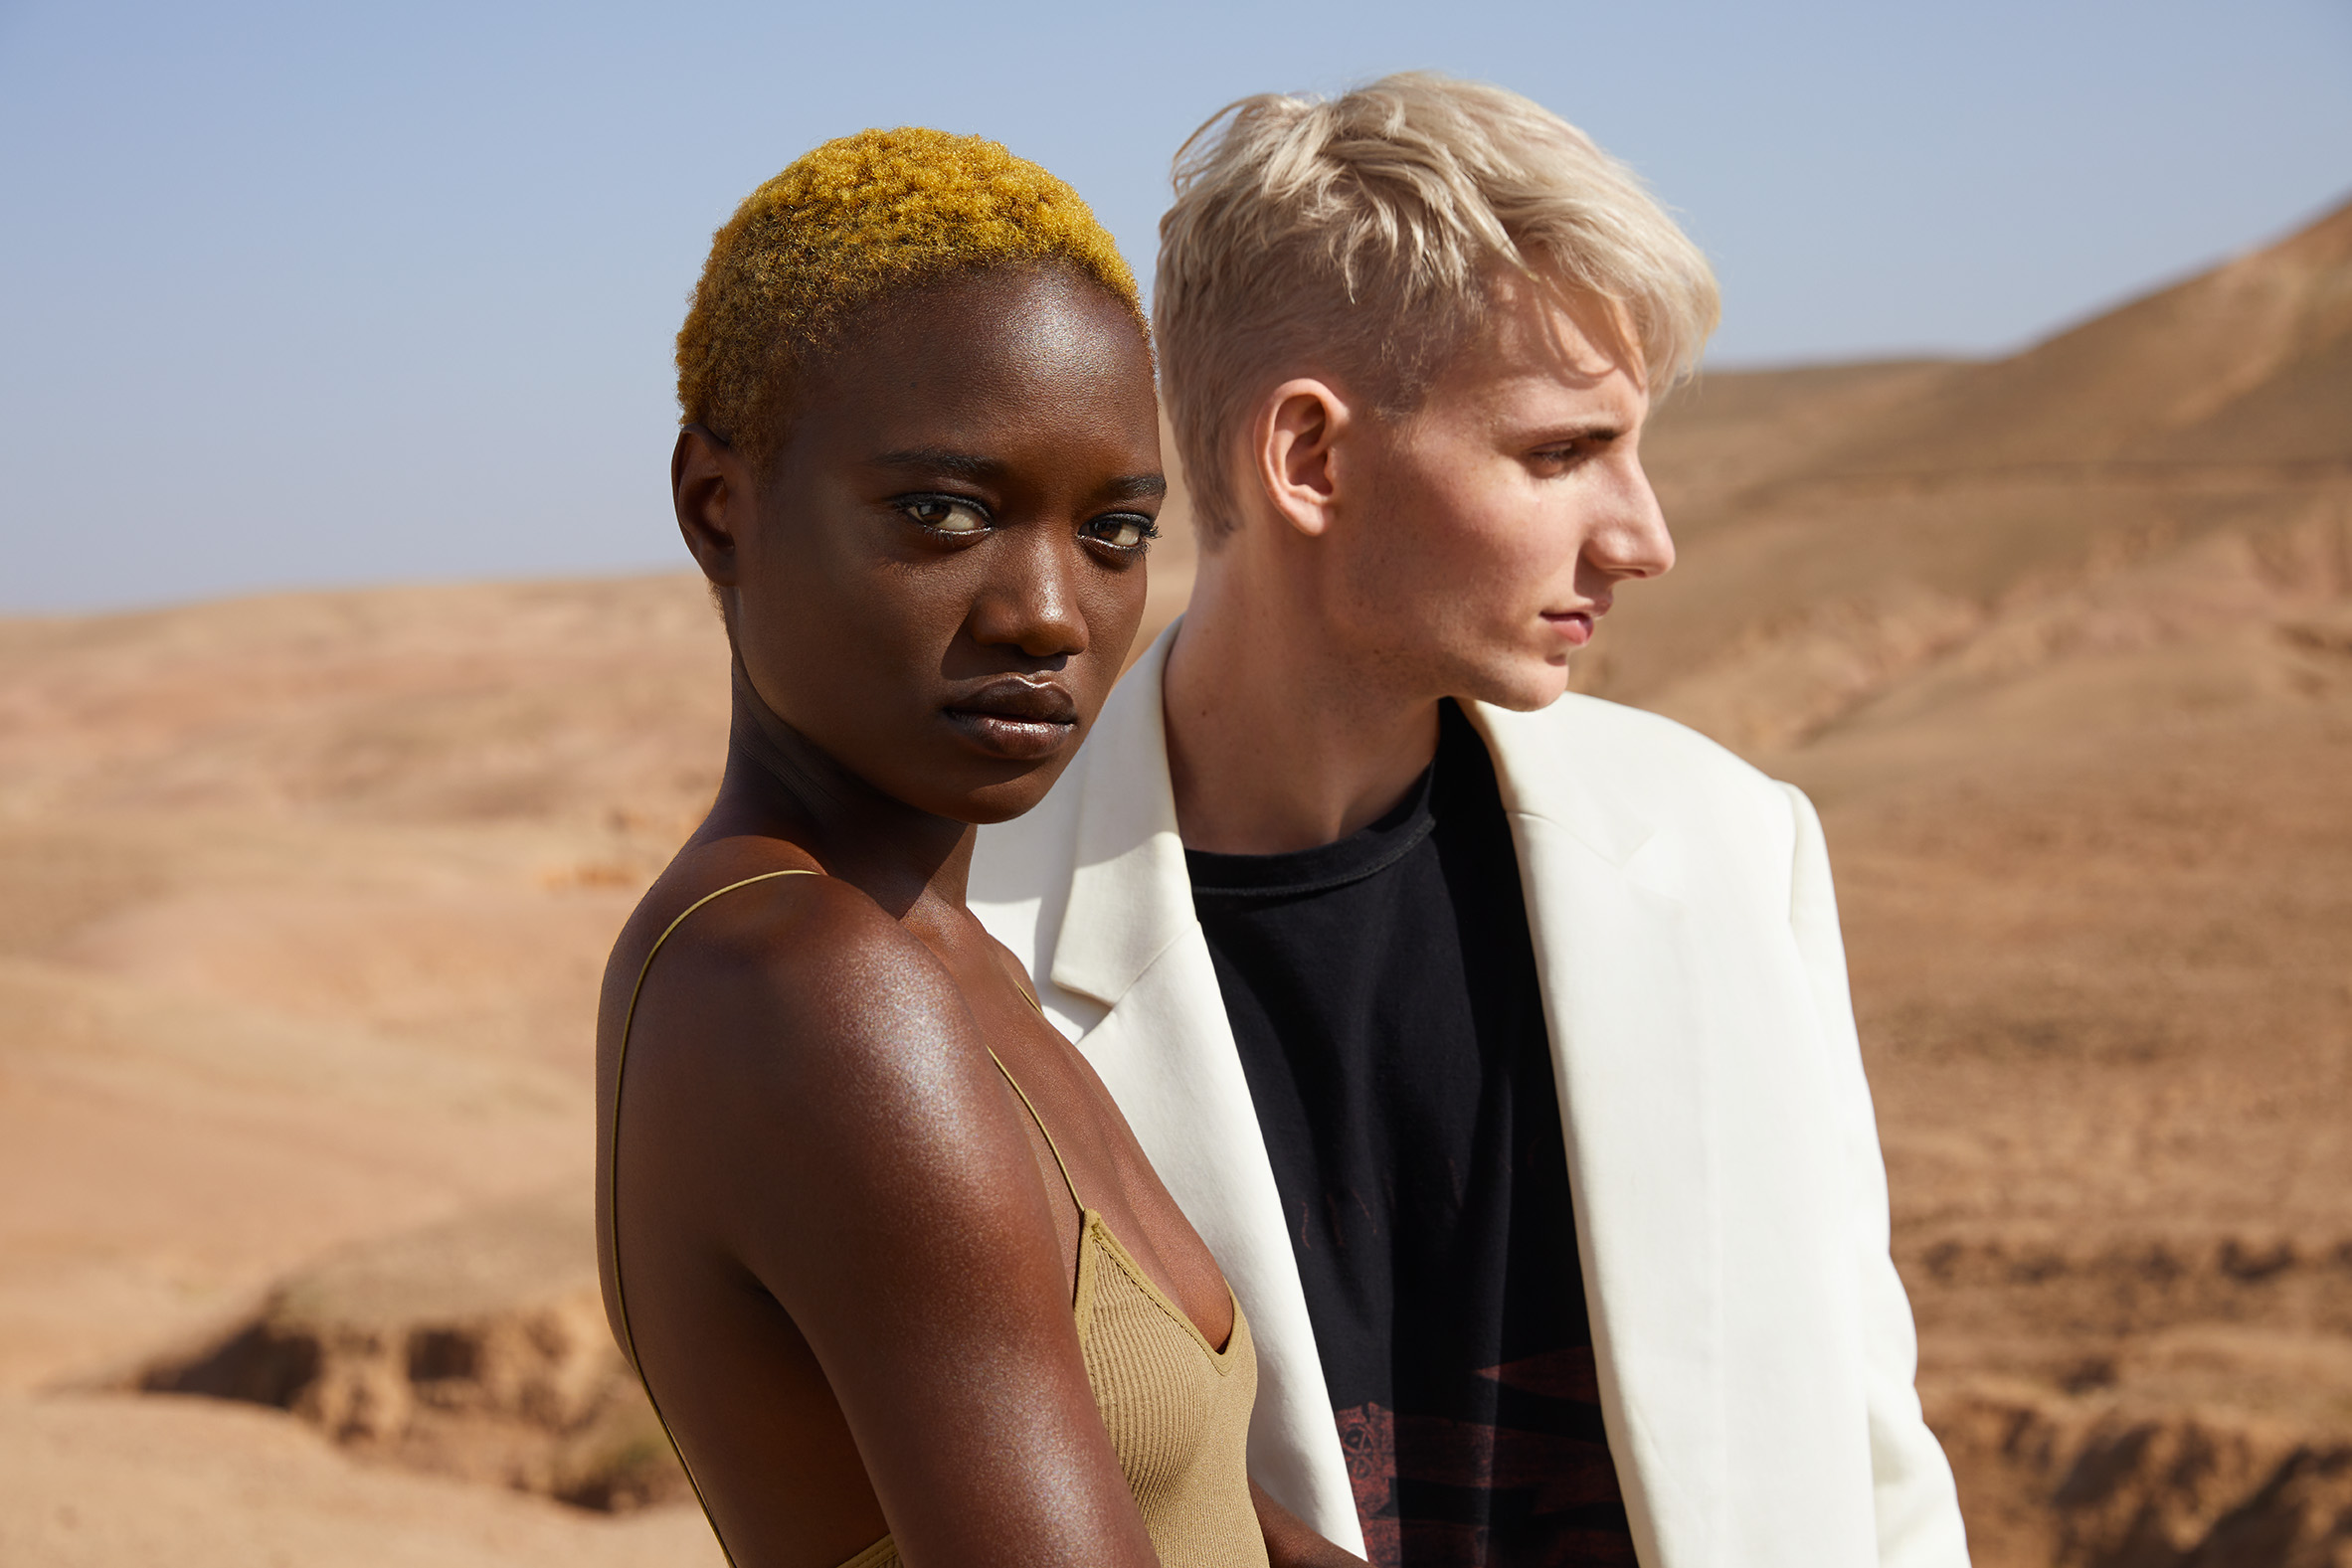 Client Wella | Photographer Camilla Armbrust | Agency T&PLondon